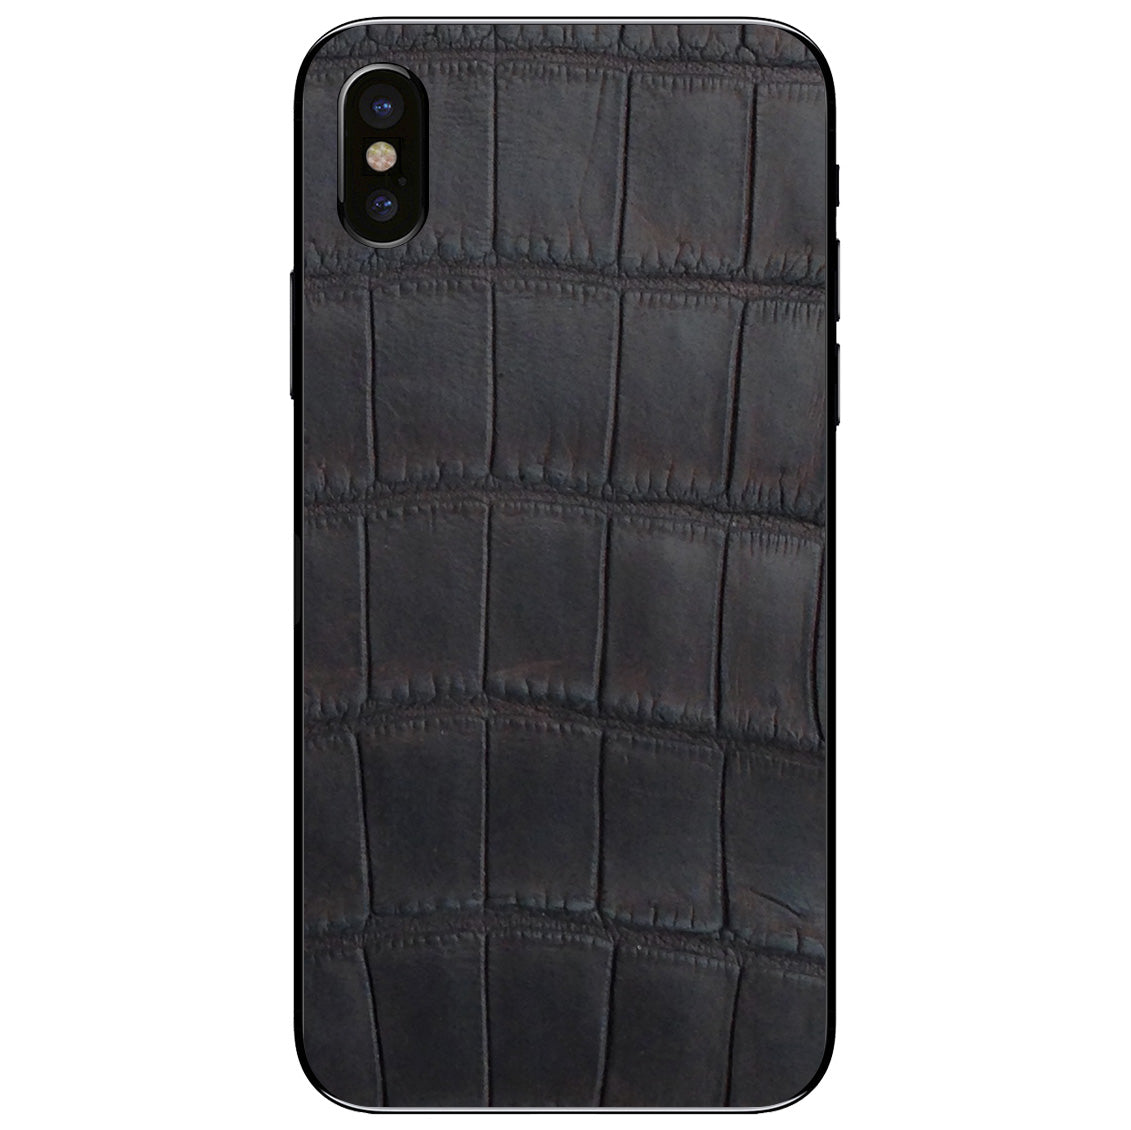 Oiled Brown Alligator iPhone X Leather Skin